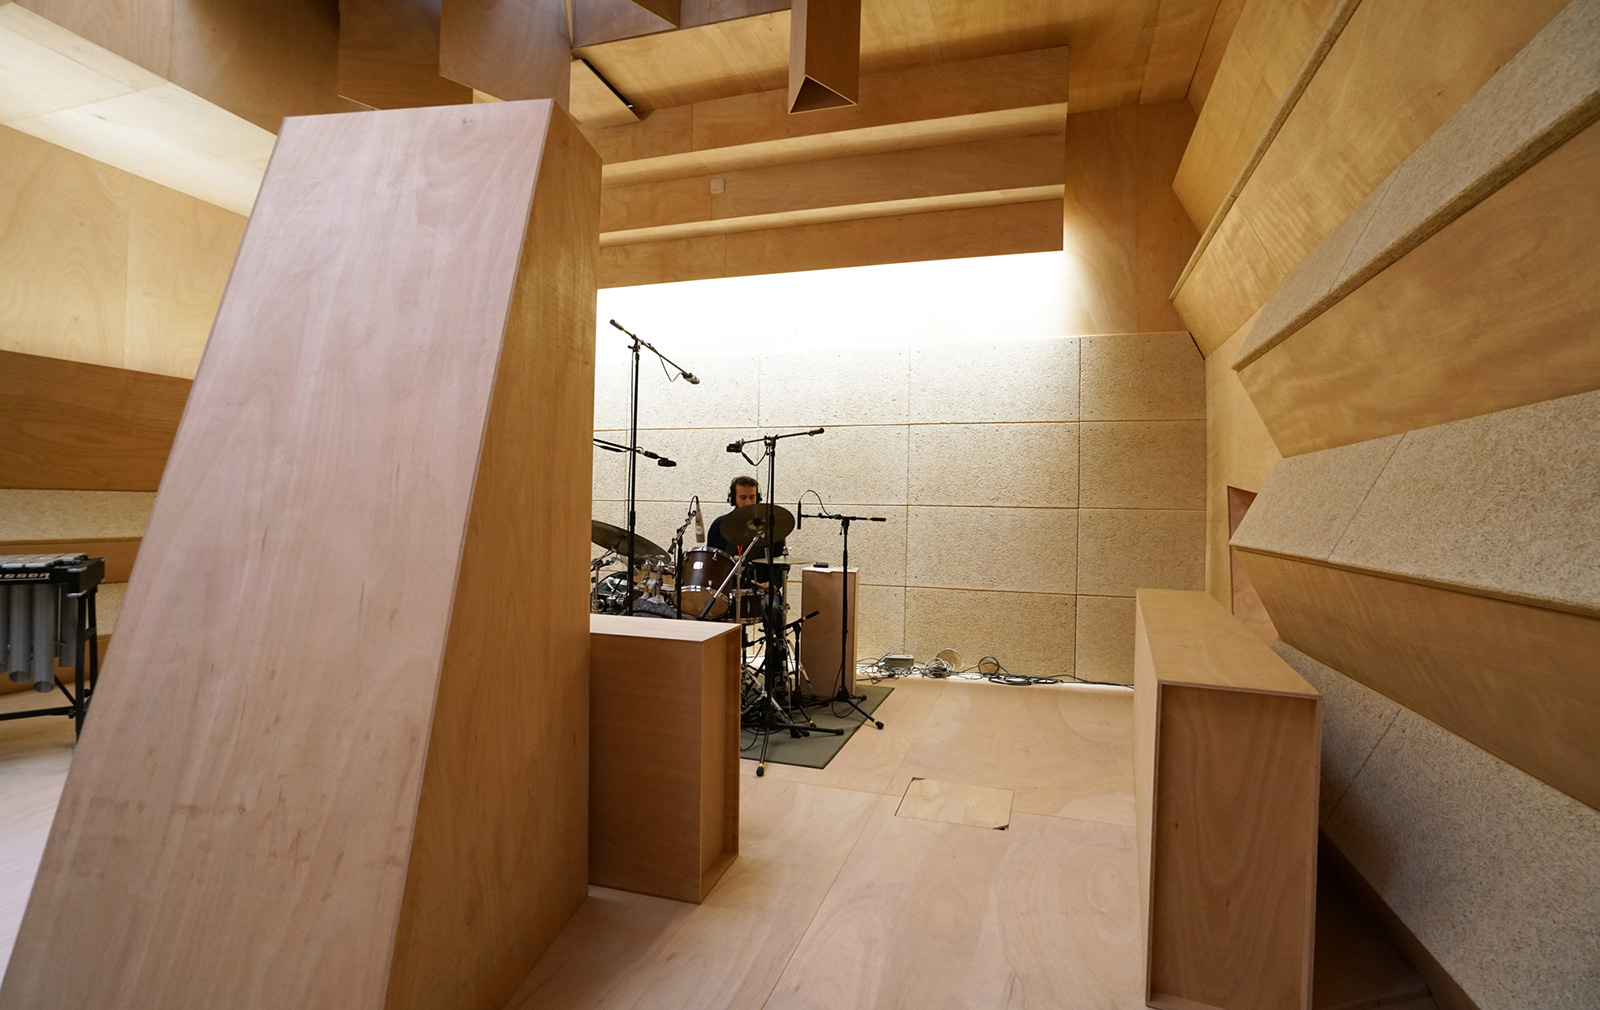 Xavier Veilhan's recording studio installation at the French Pavilion during the Venice Biennale